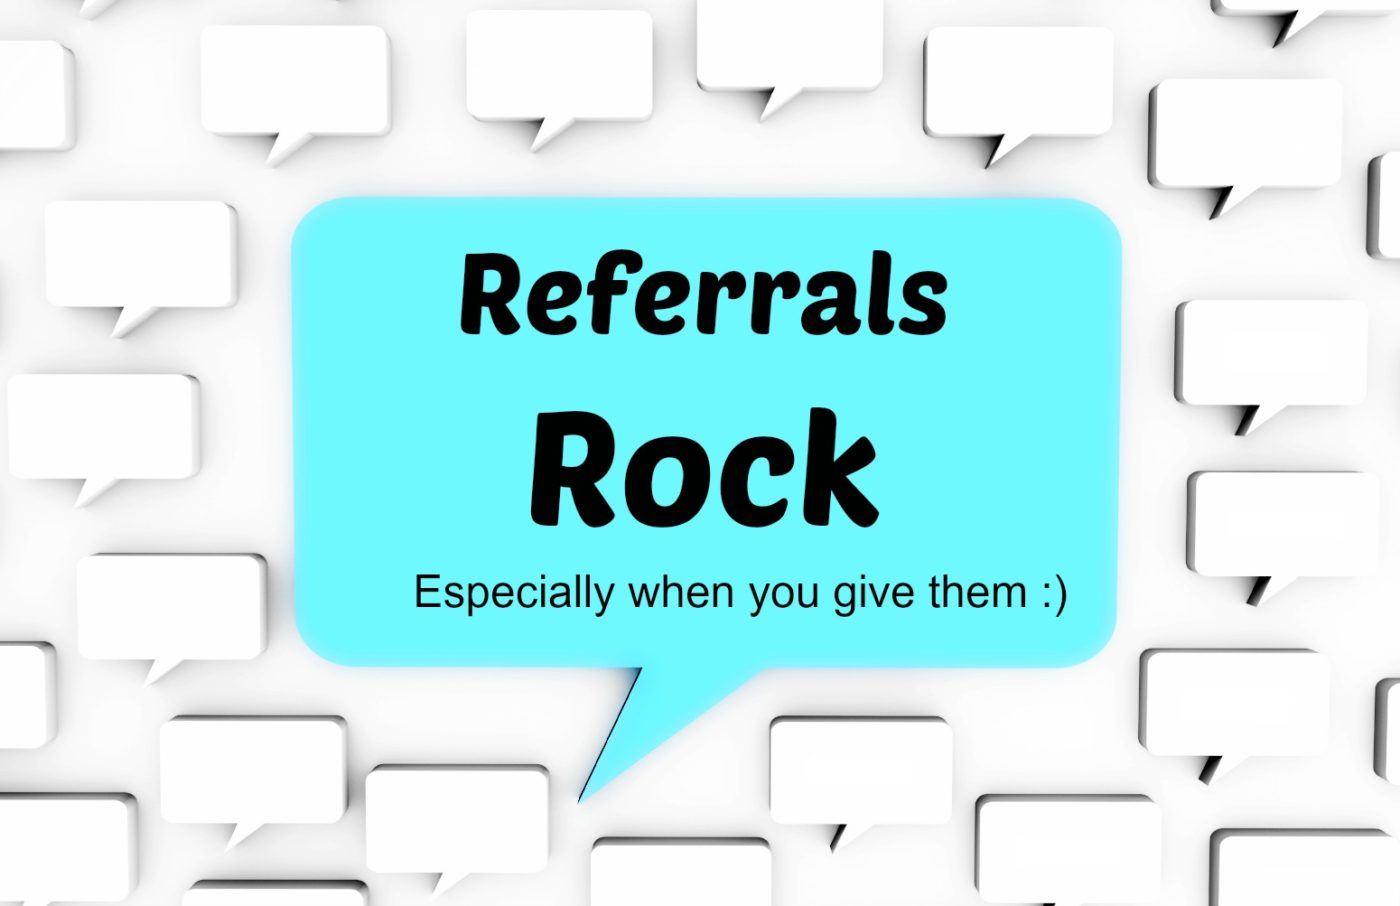 Want more real estate referrals? Pay it forward